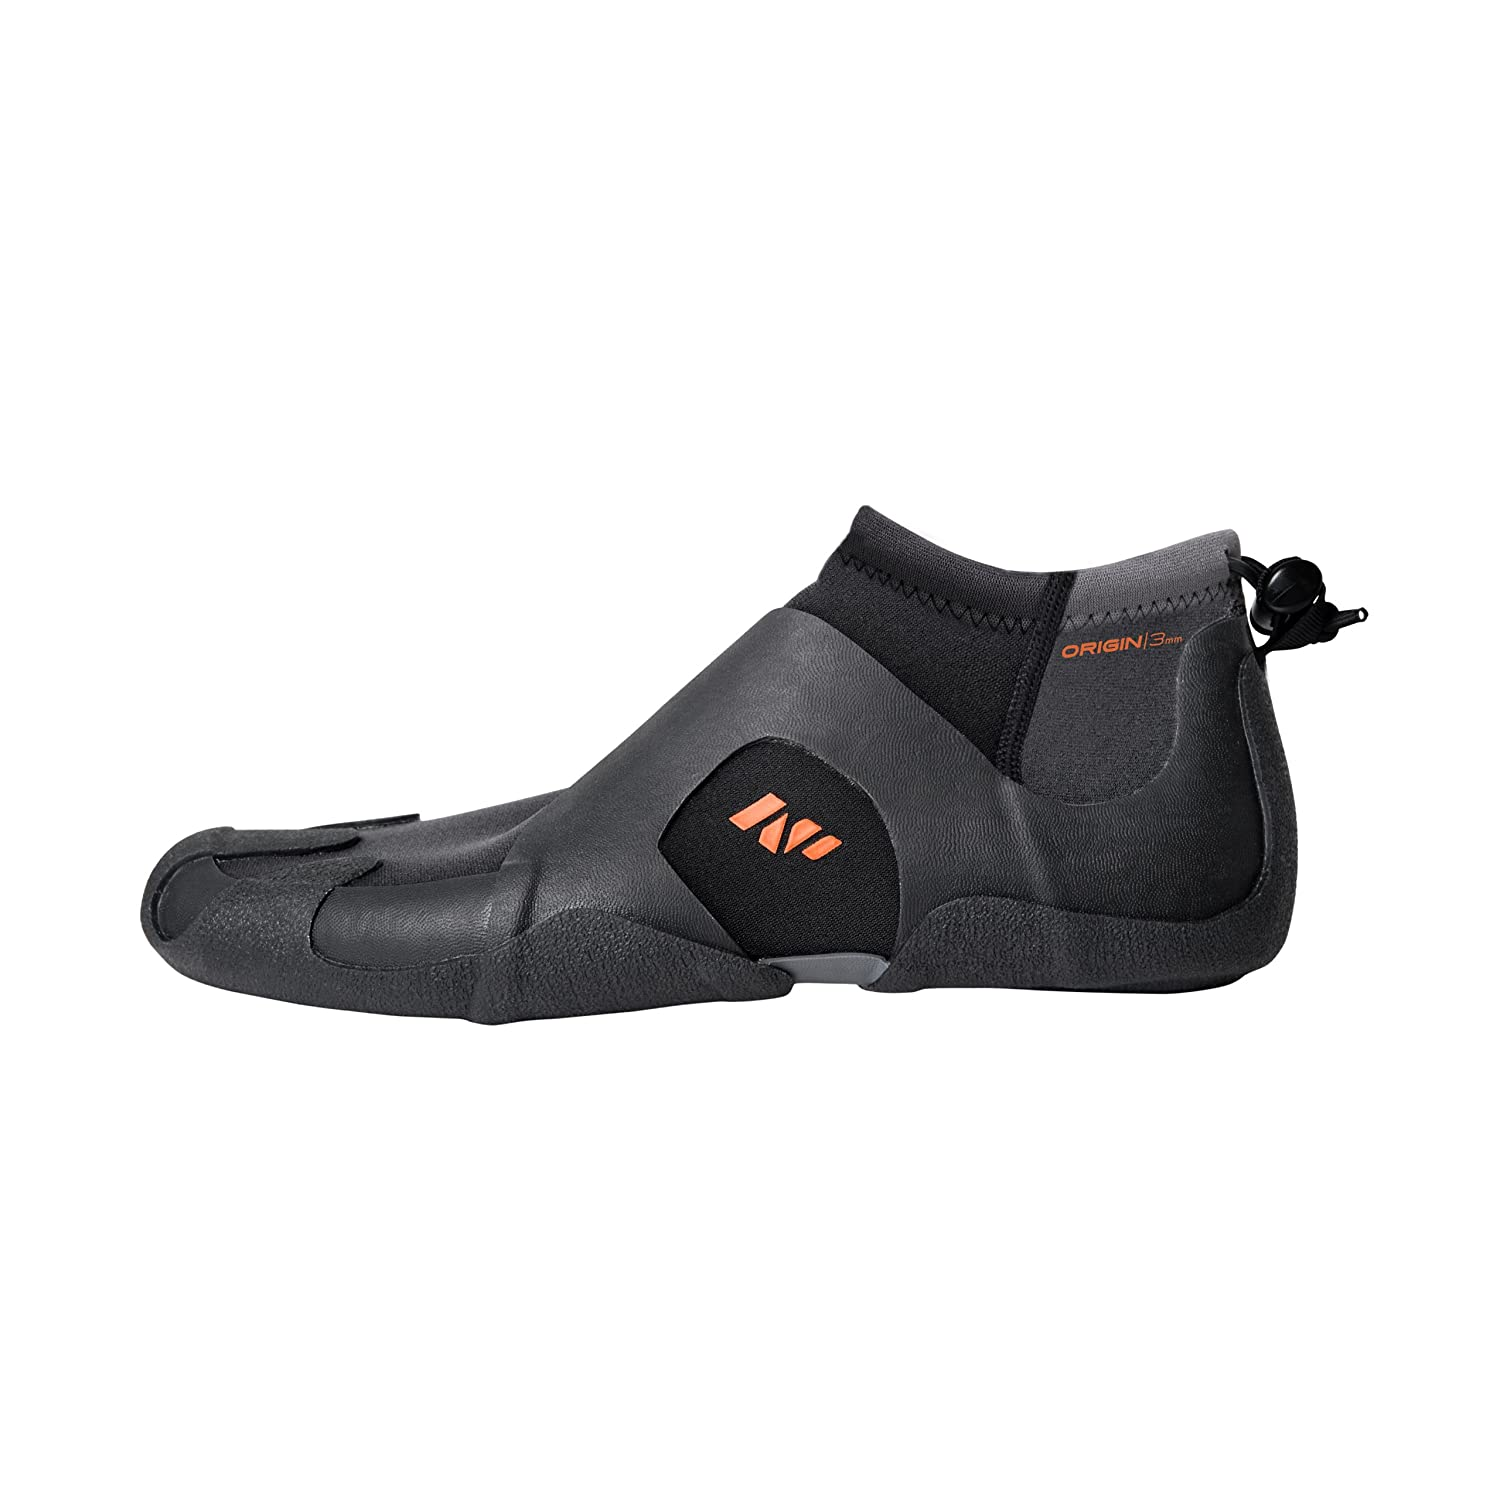 NP Surf Origin 3mm Low Cut Round Toe Boots